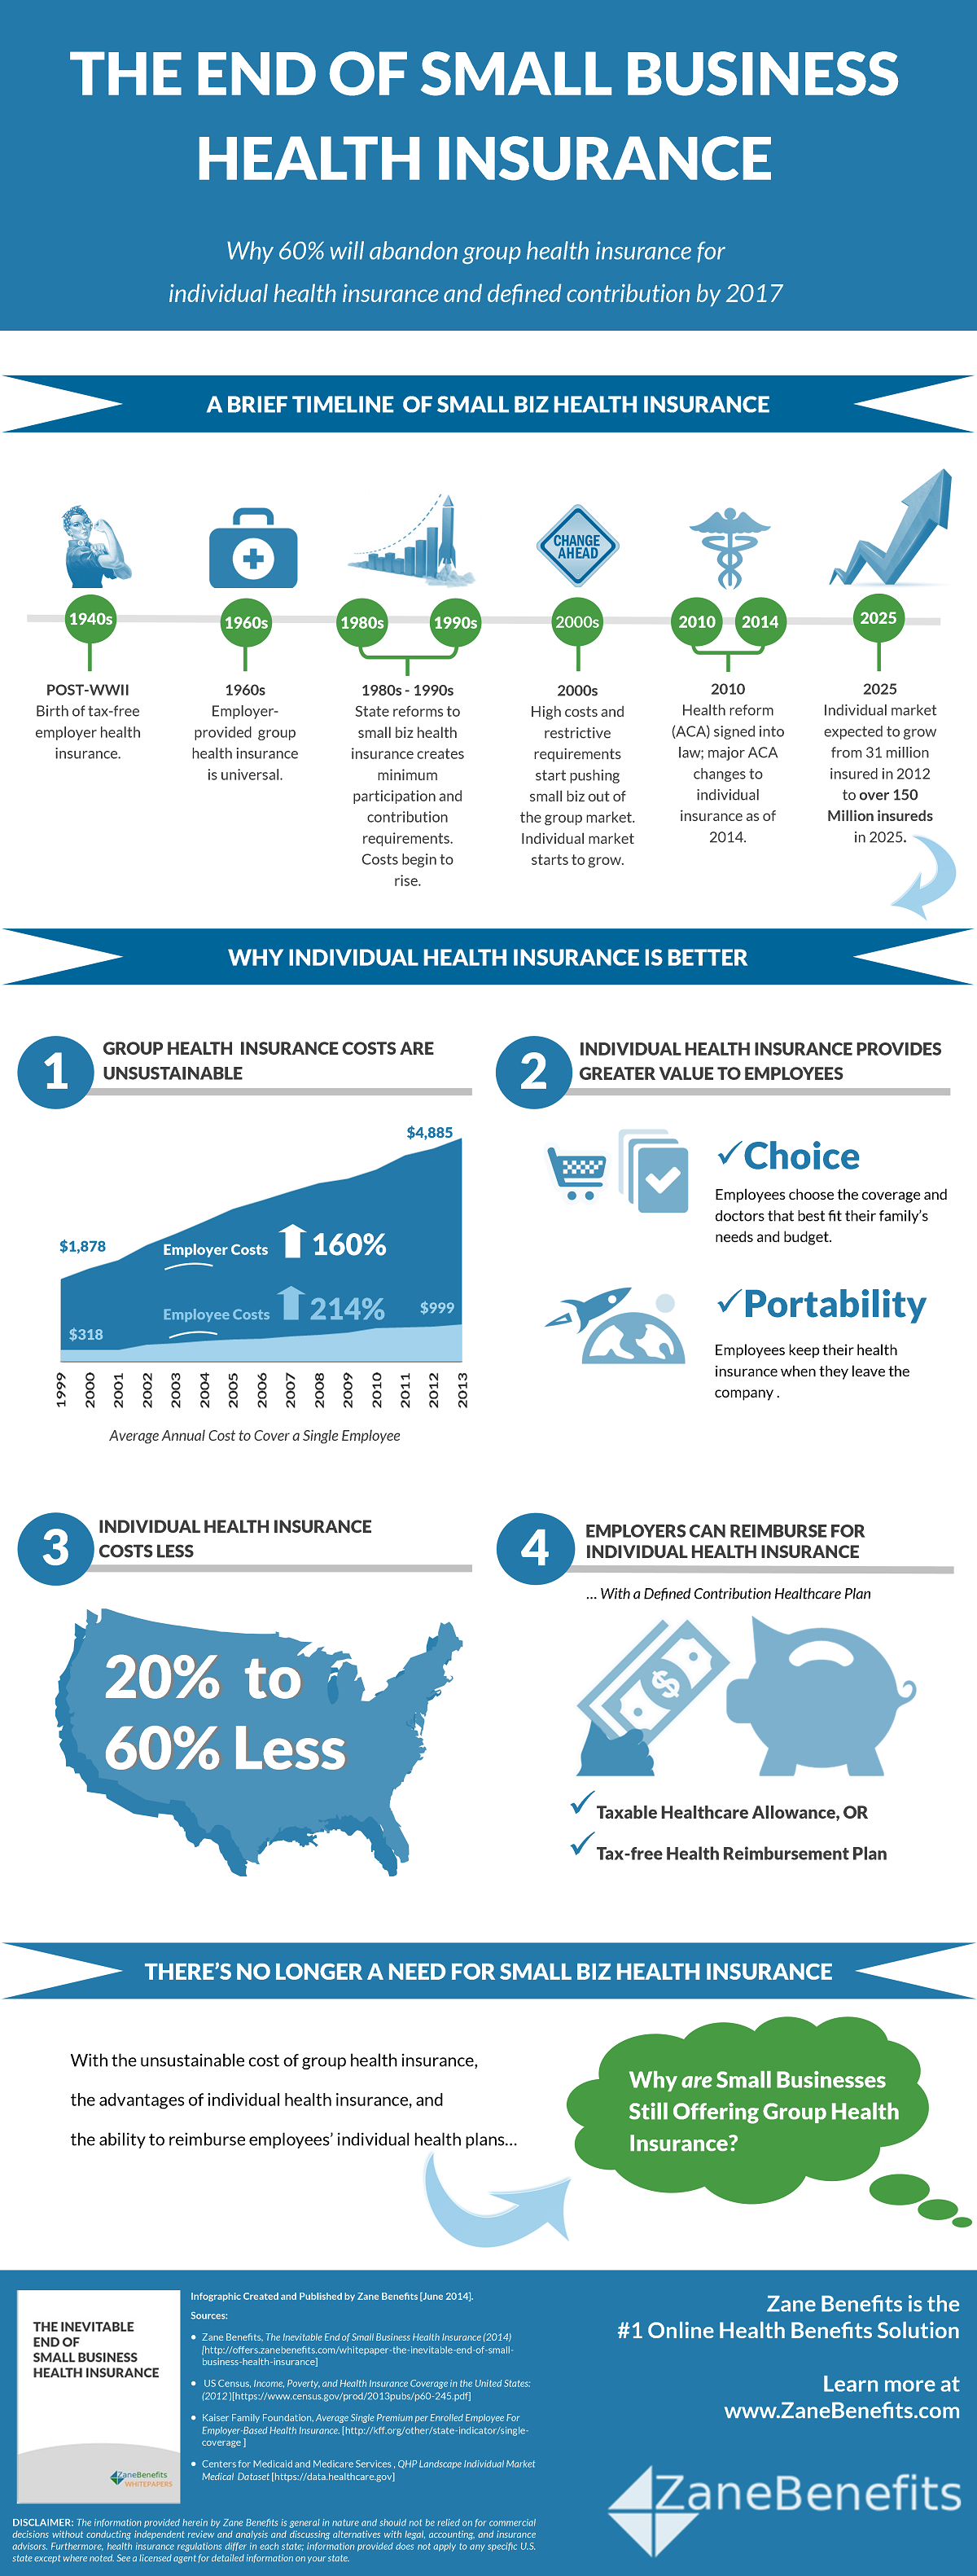 Infographic on the End of Small Business Health Insurance